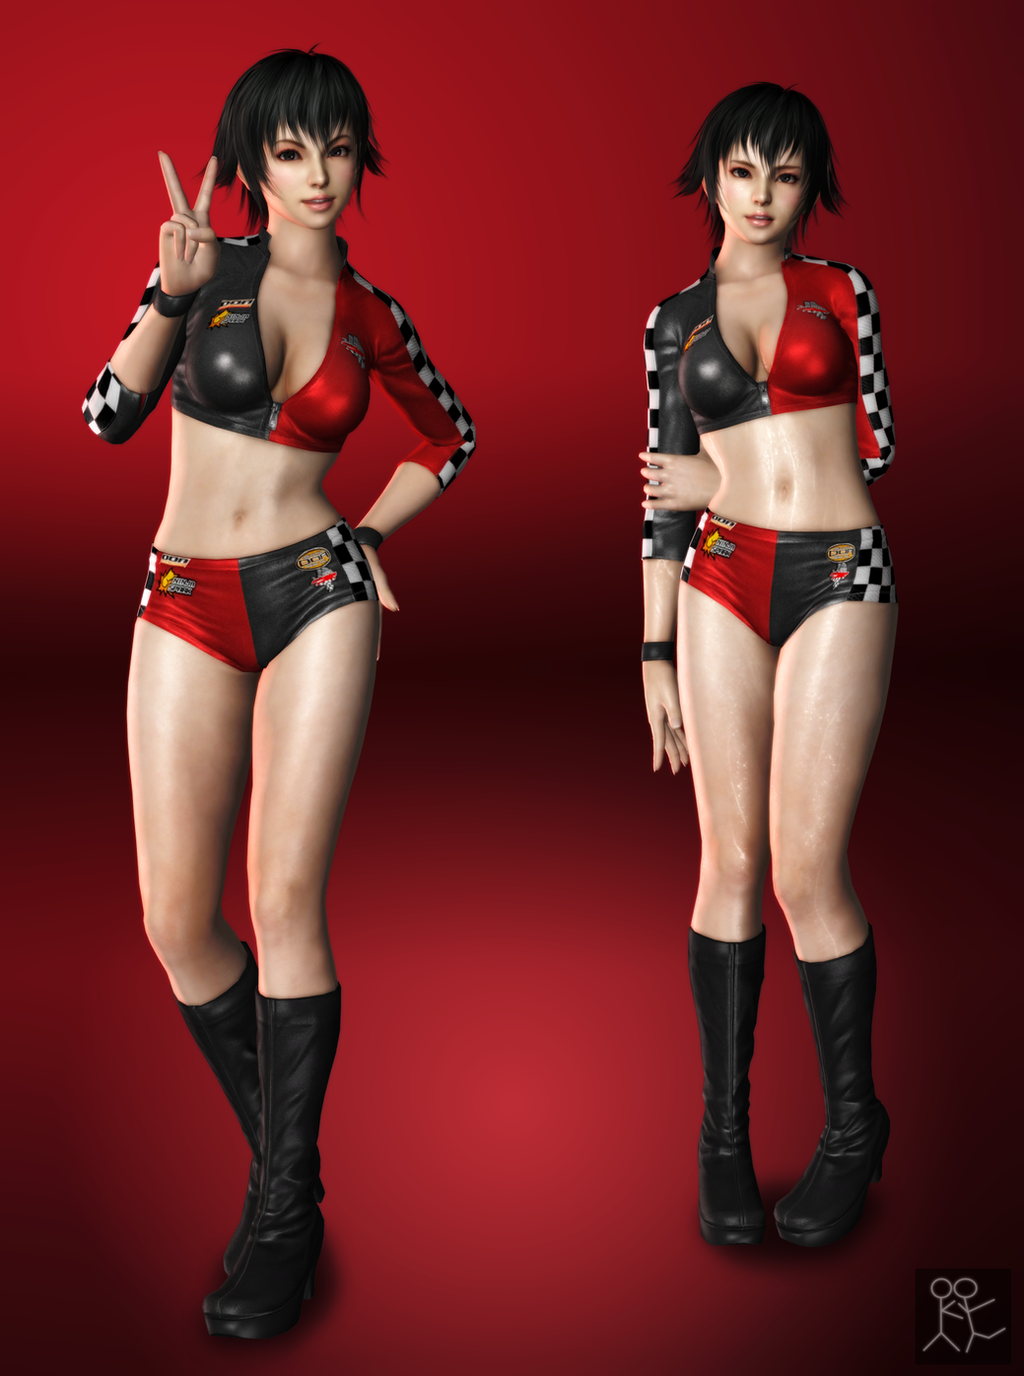 Dead Or Alive 5 Pai Chan Hotties by ArmachamCorp on DeviantArt